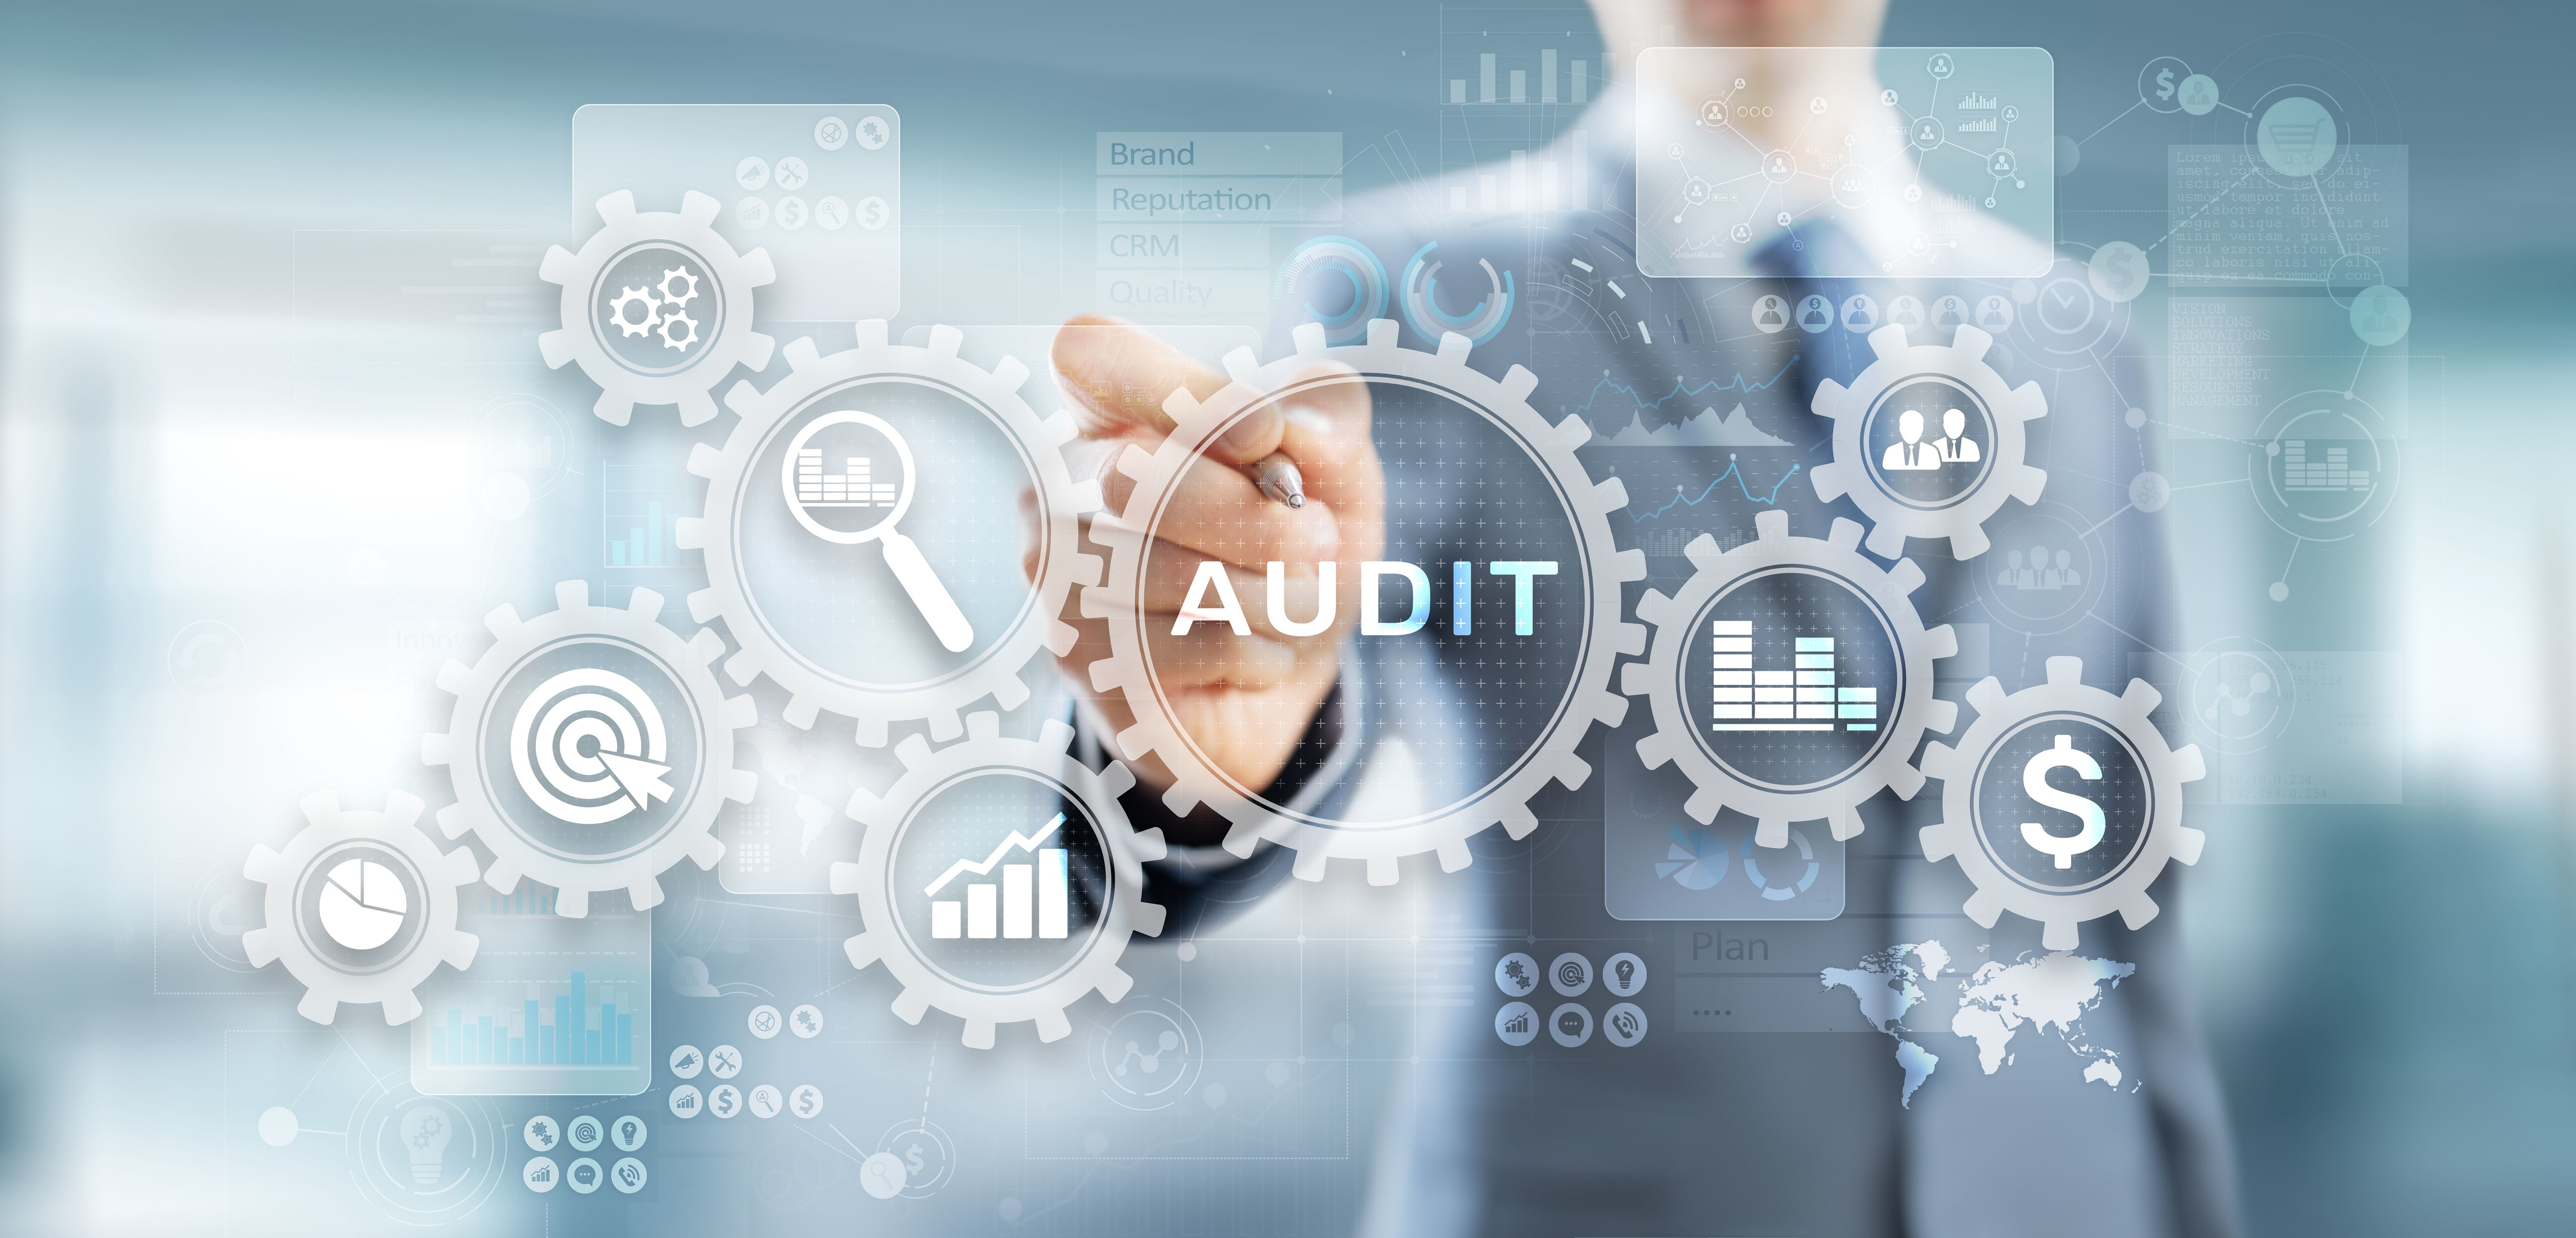 Key features of specialized audit software from redboard